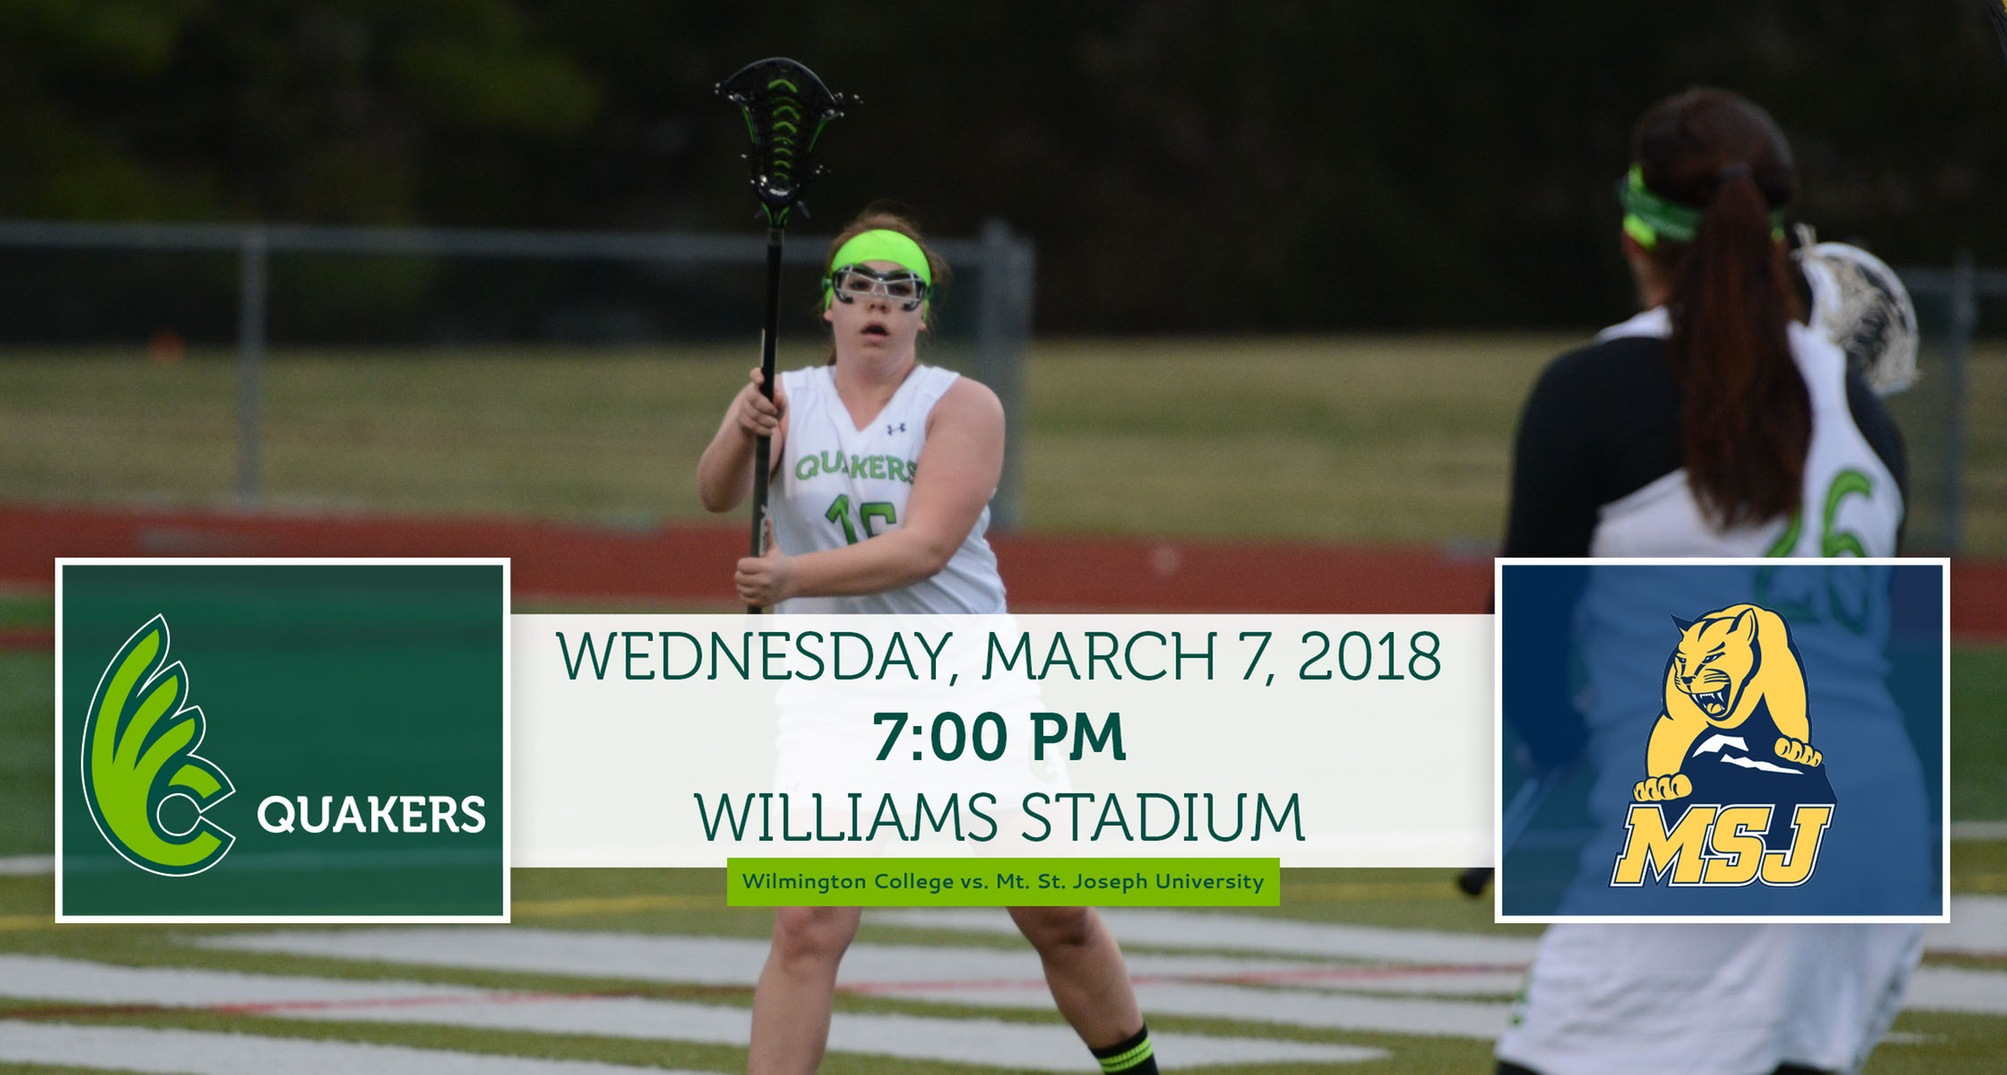 Women's Lacrosse Faces Off Against Mt. St. Joseph on Wednesday